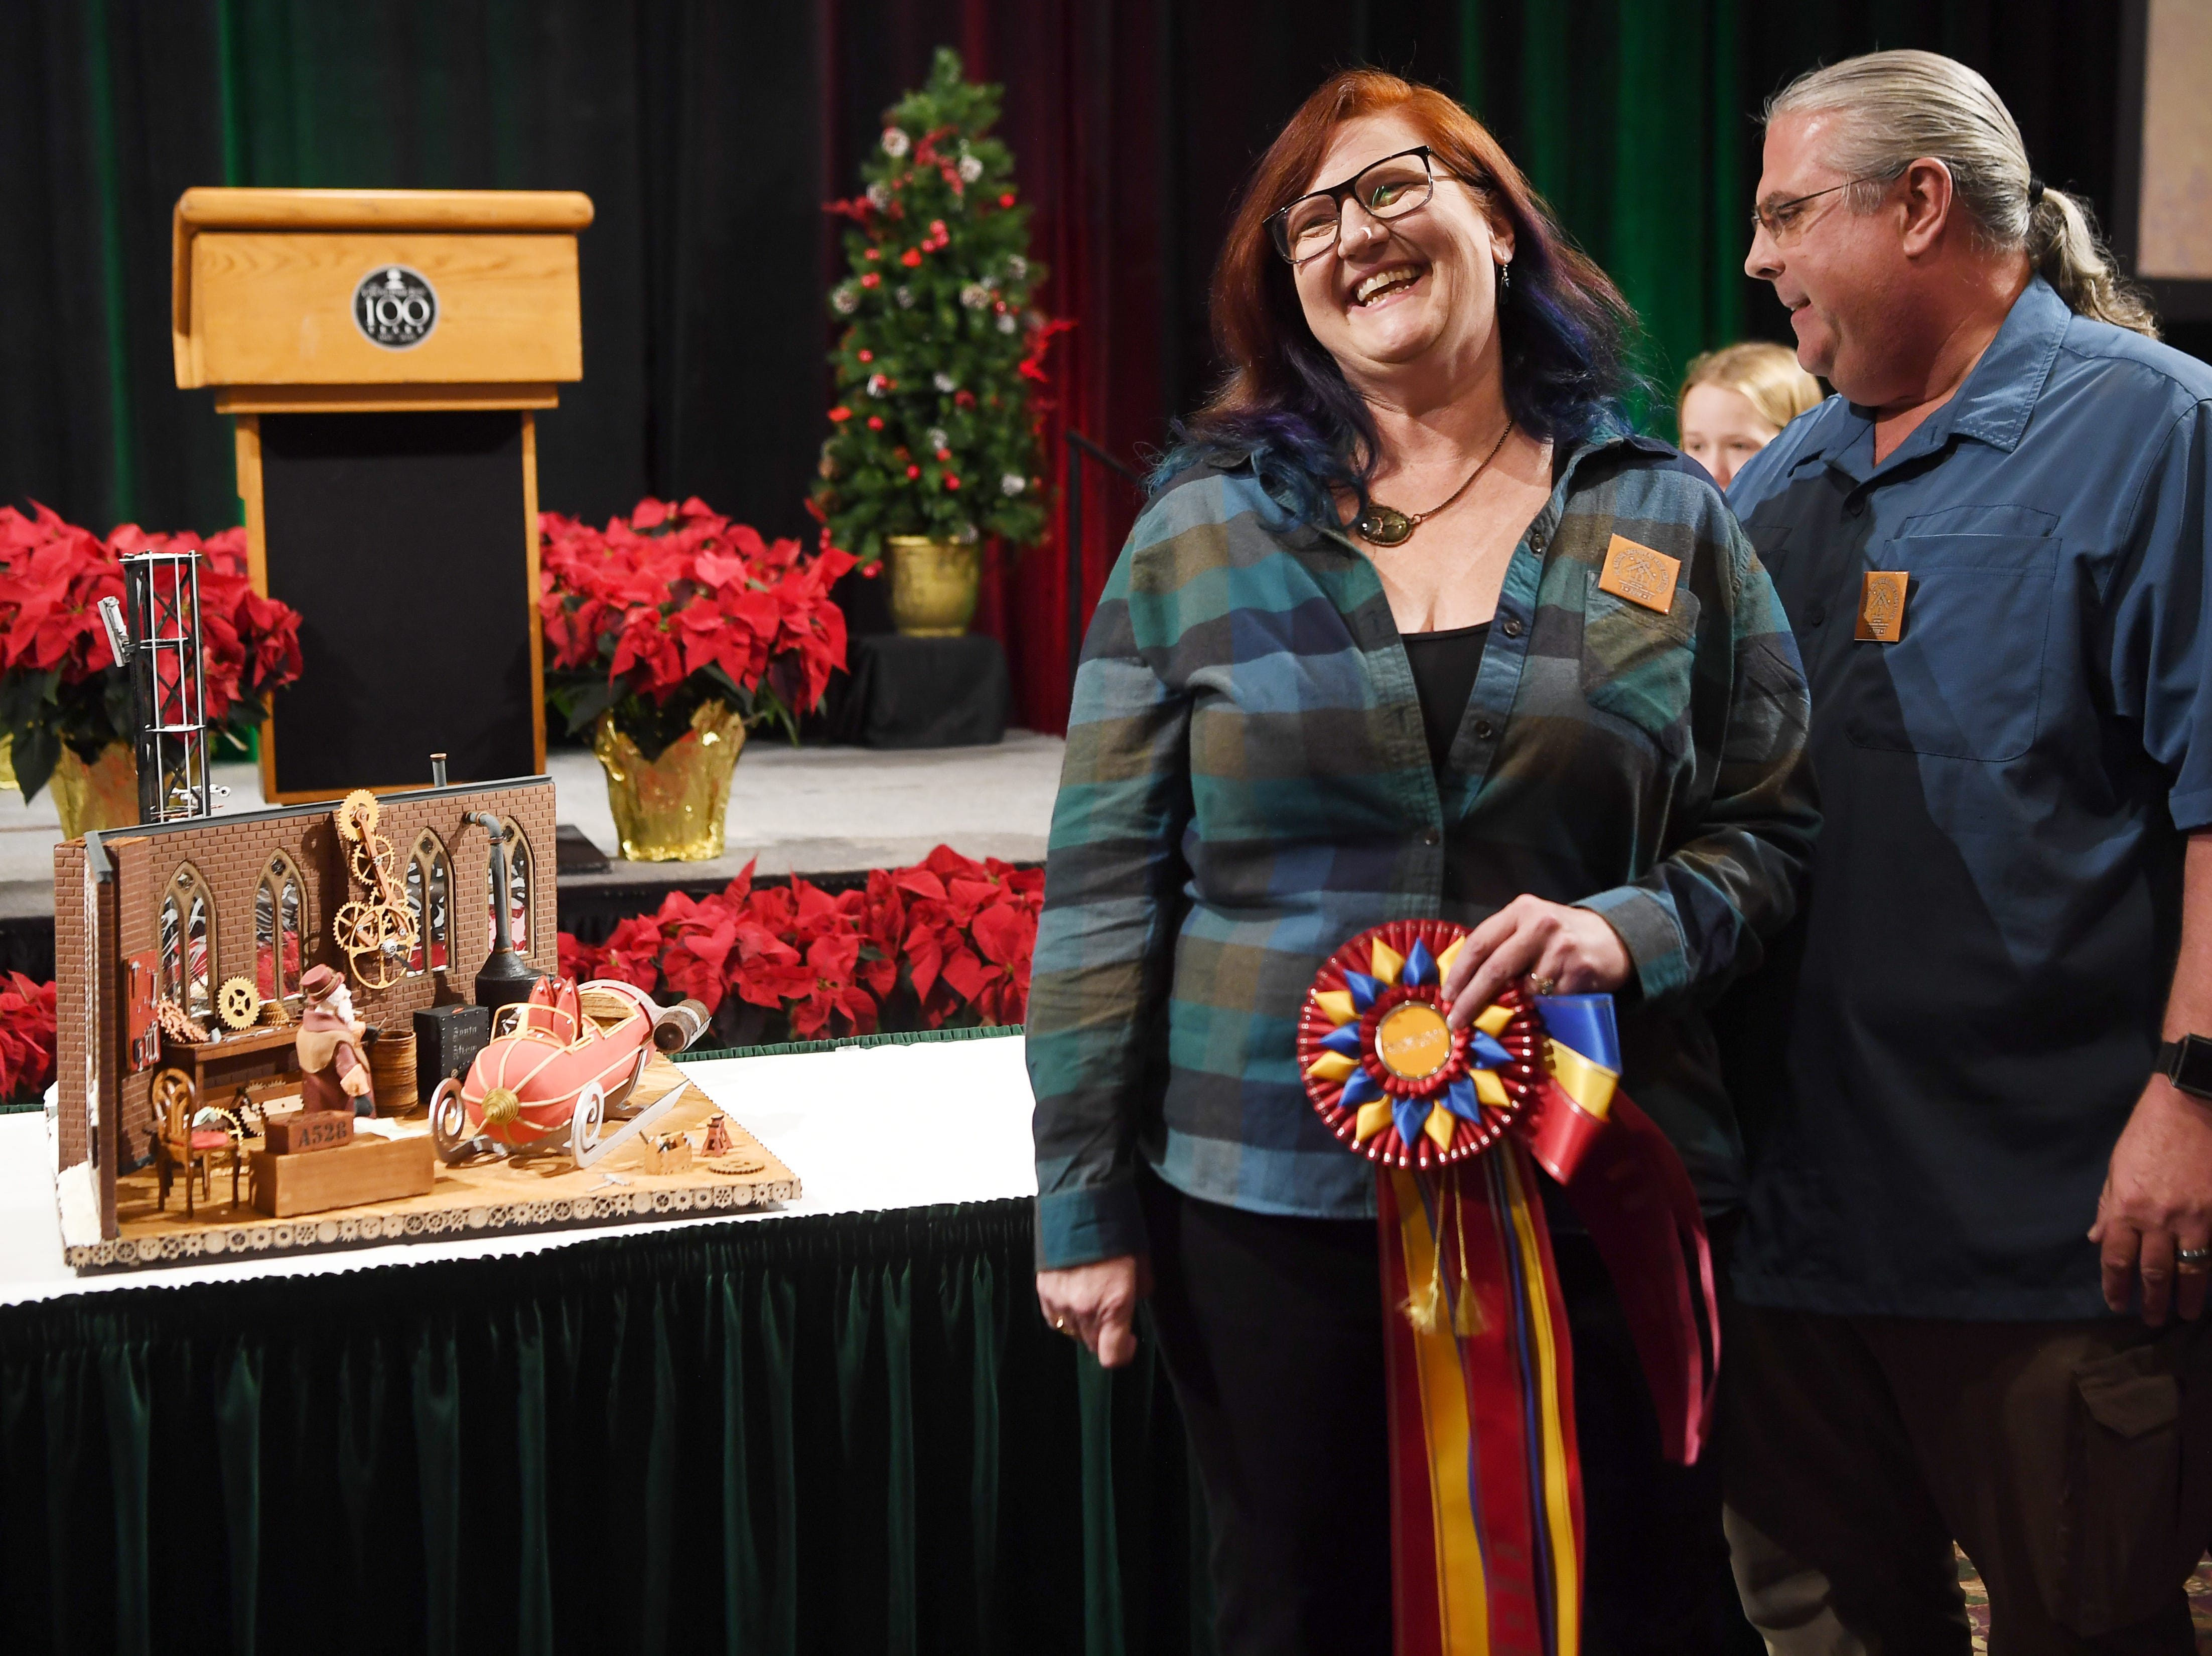 """Julie and Michael Andreacola, of Indian Trail, stand next to their grand prize entry """"Gearing up for Christmas,"""" at the Omni Grove Park Inn's annual gingerbread competition Nov. 19, 2018."""